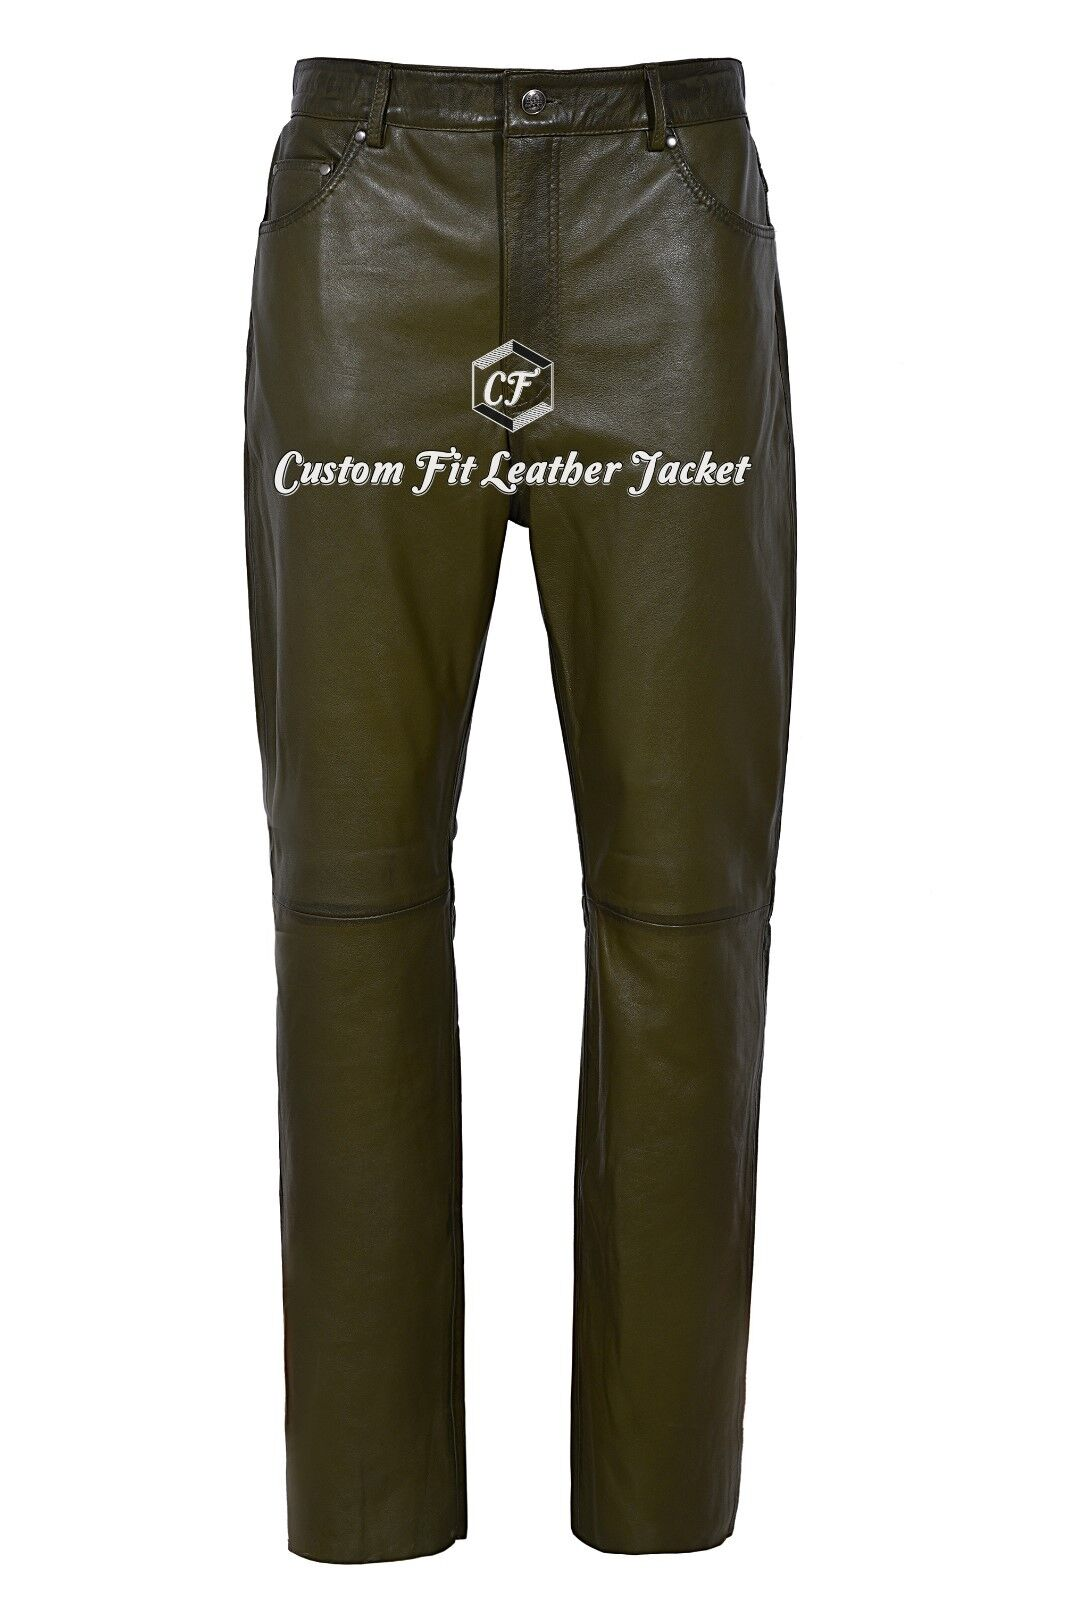 Men's Leather Trouser Motorcycle Olive Grün Lambskin Leather Jean Style 501